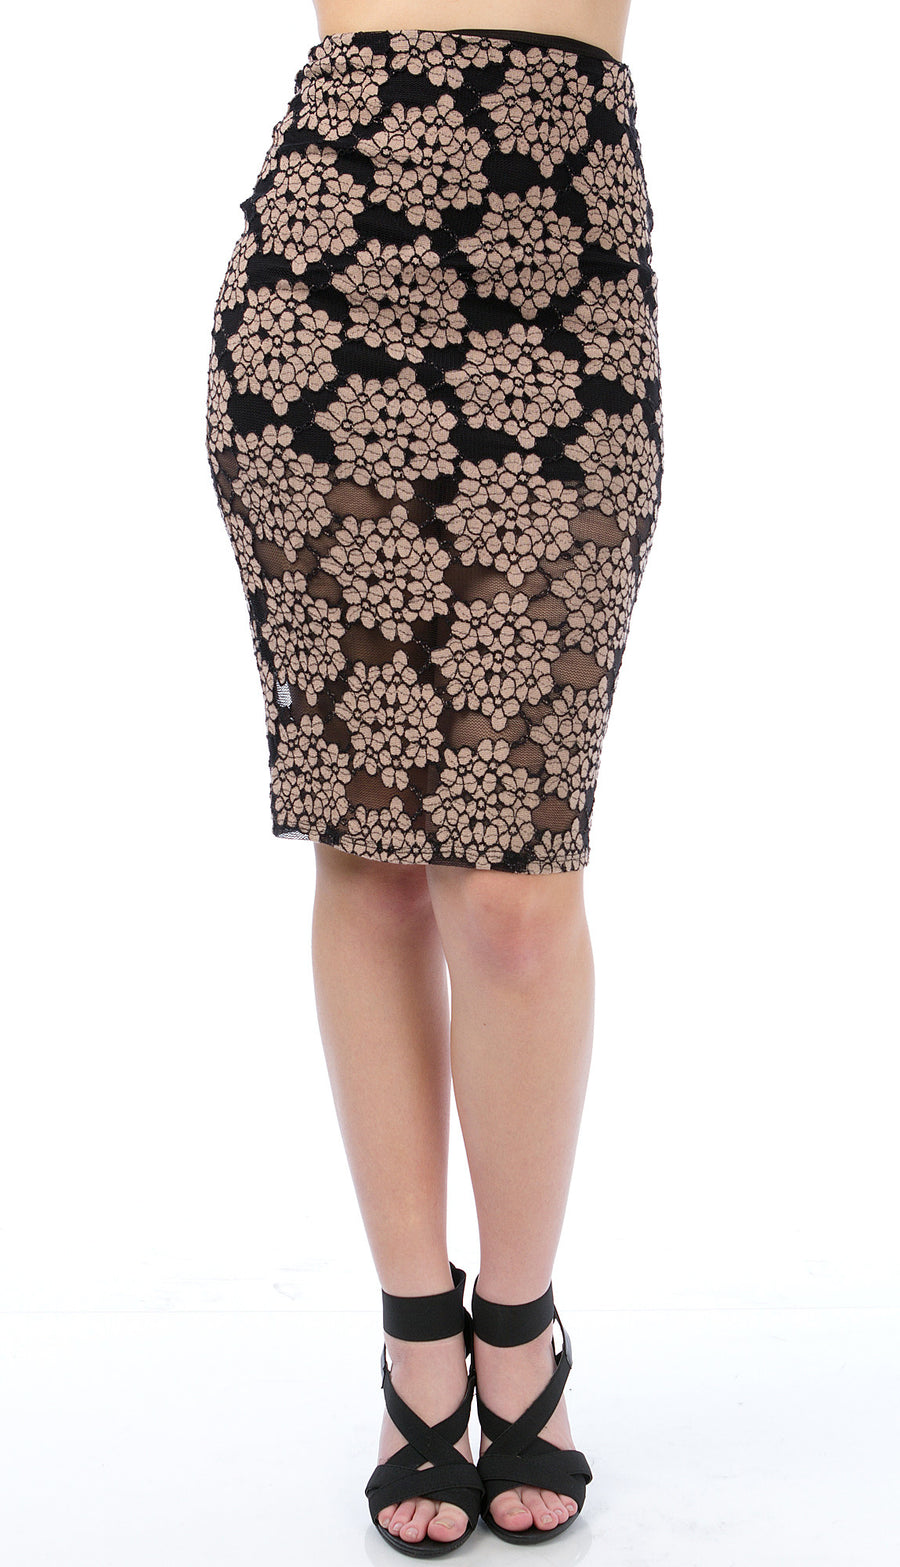 Spring Blossom Mesh Pencil Skirt